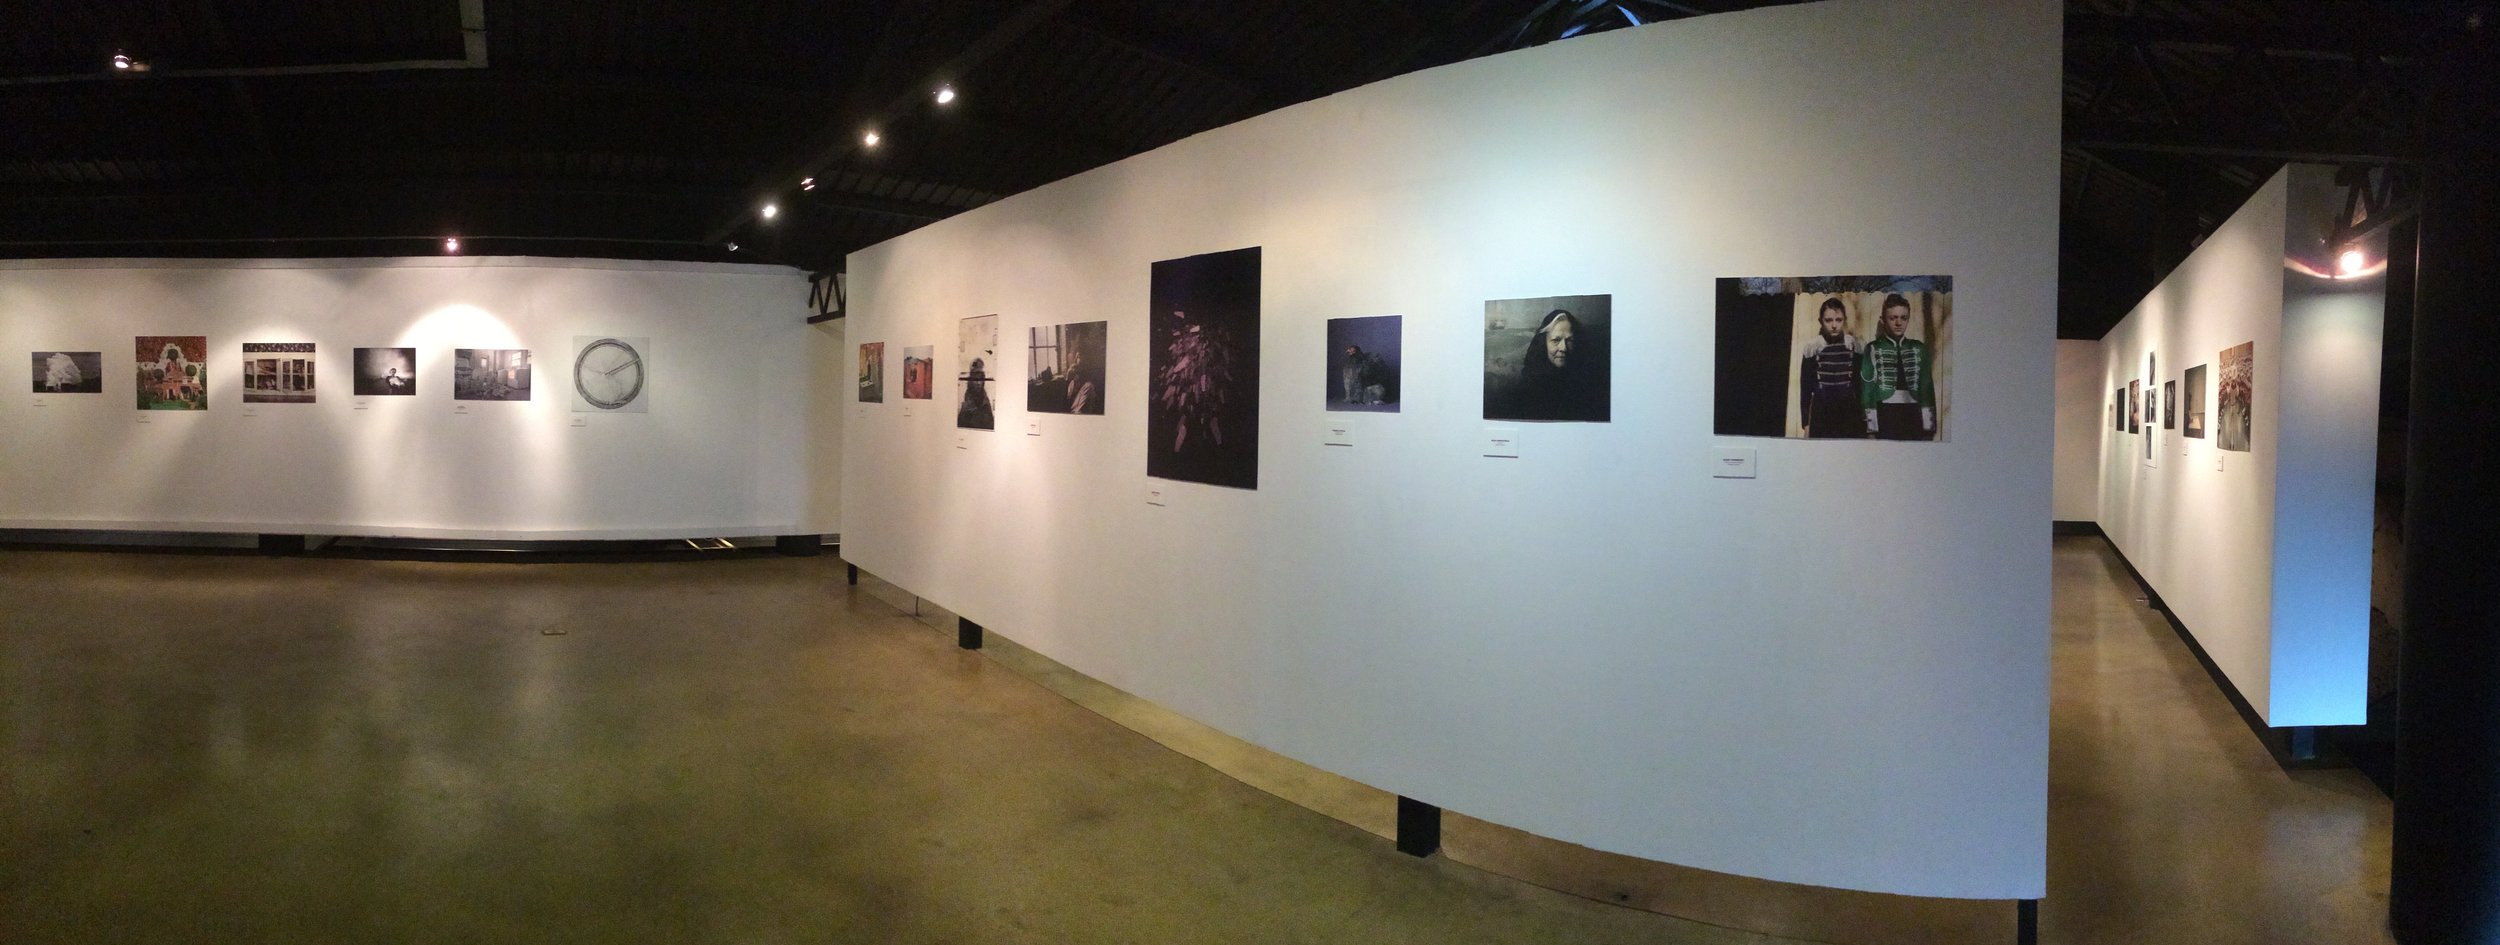 Our Critical Mass Top 50 exhibition at Casa Santo Domingo